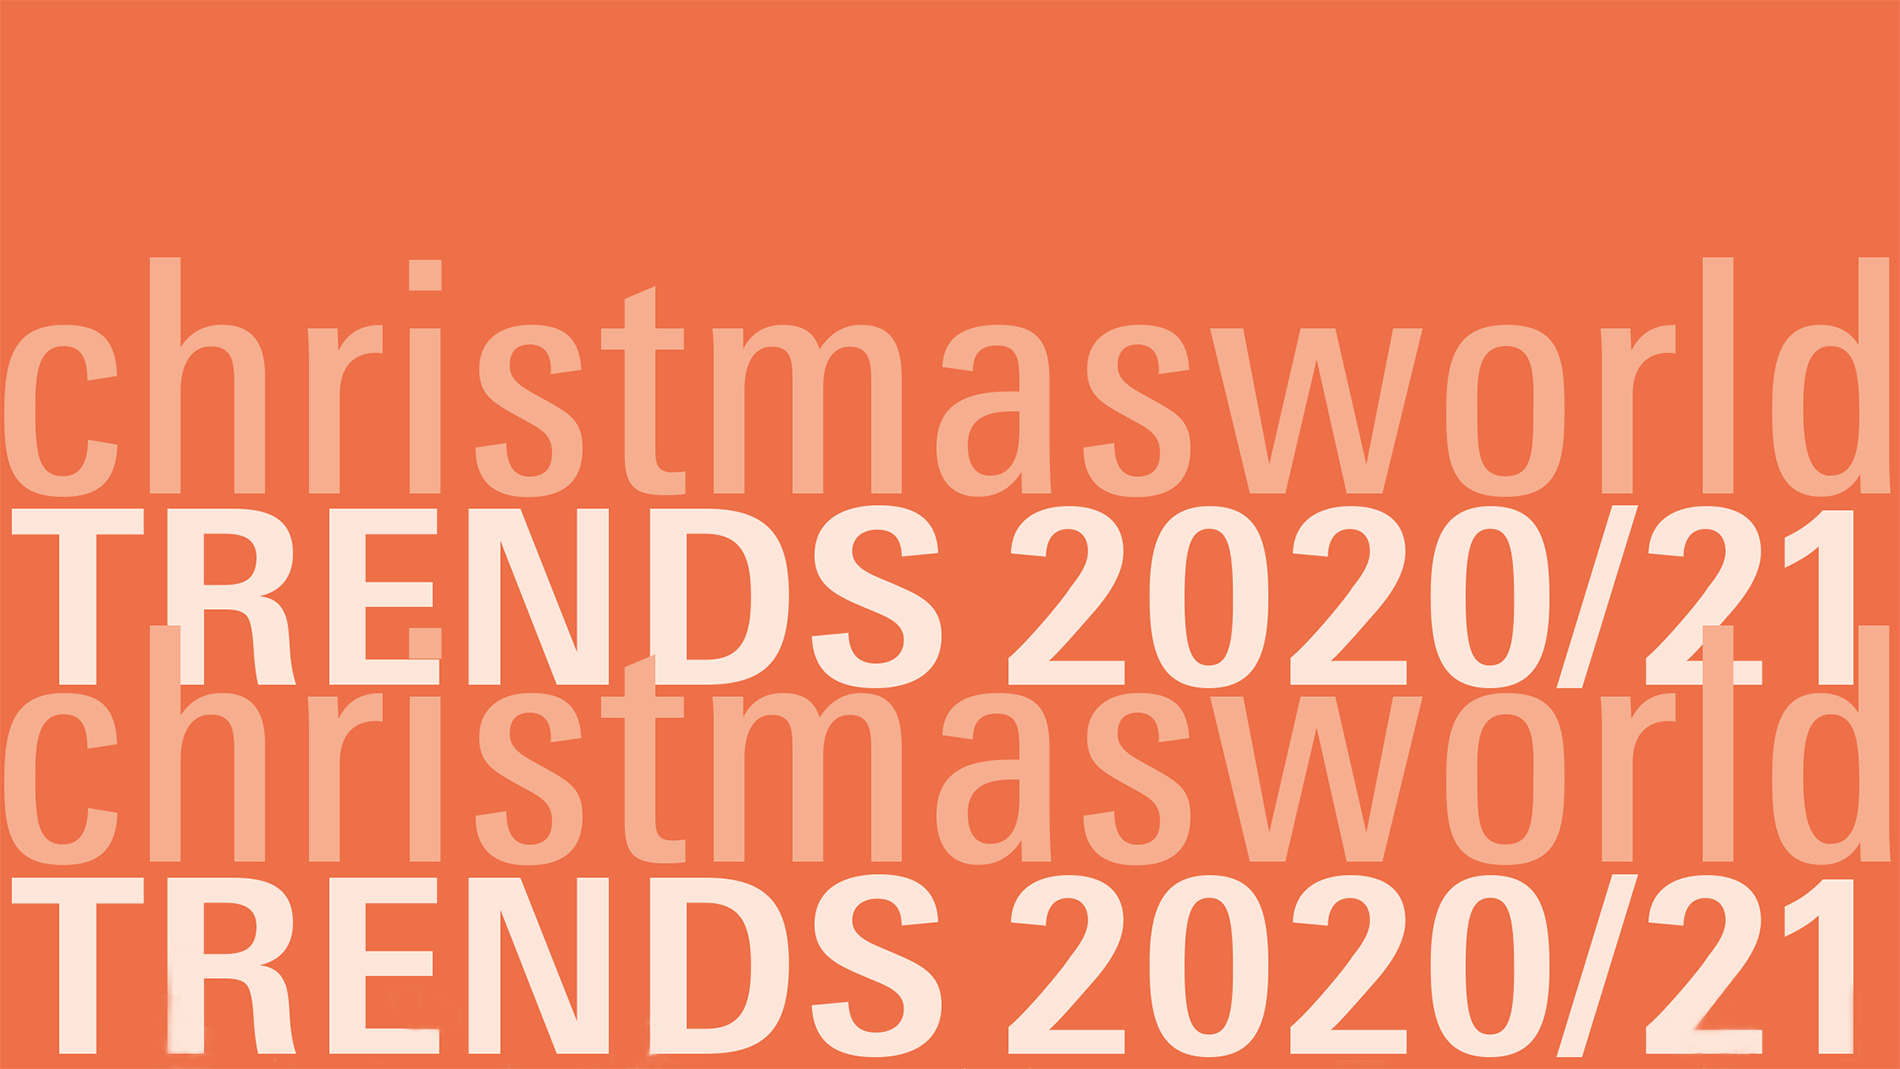 Christmasworld Trends 2020/21 Cover Trend brochure